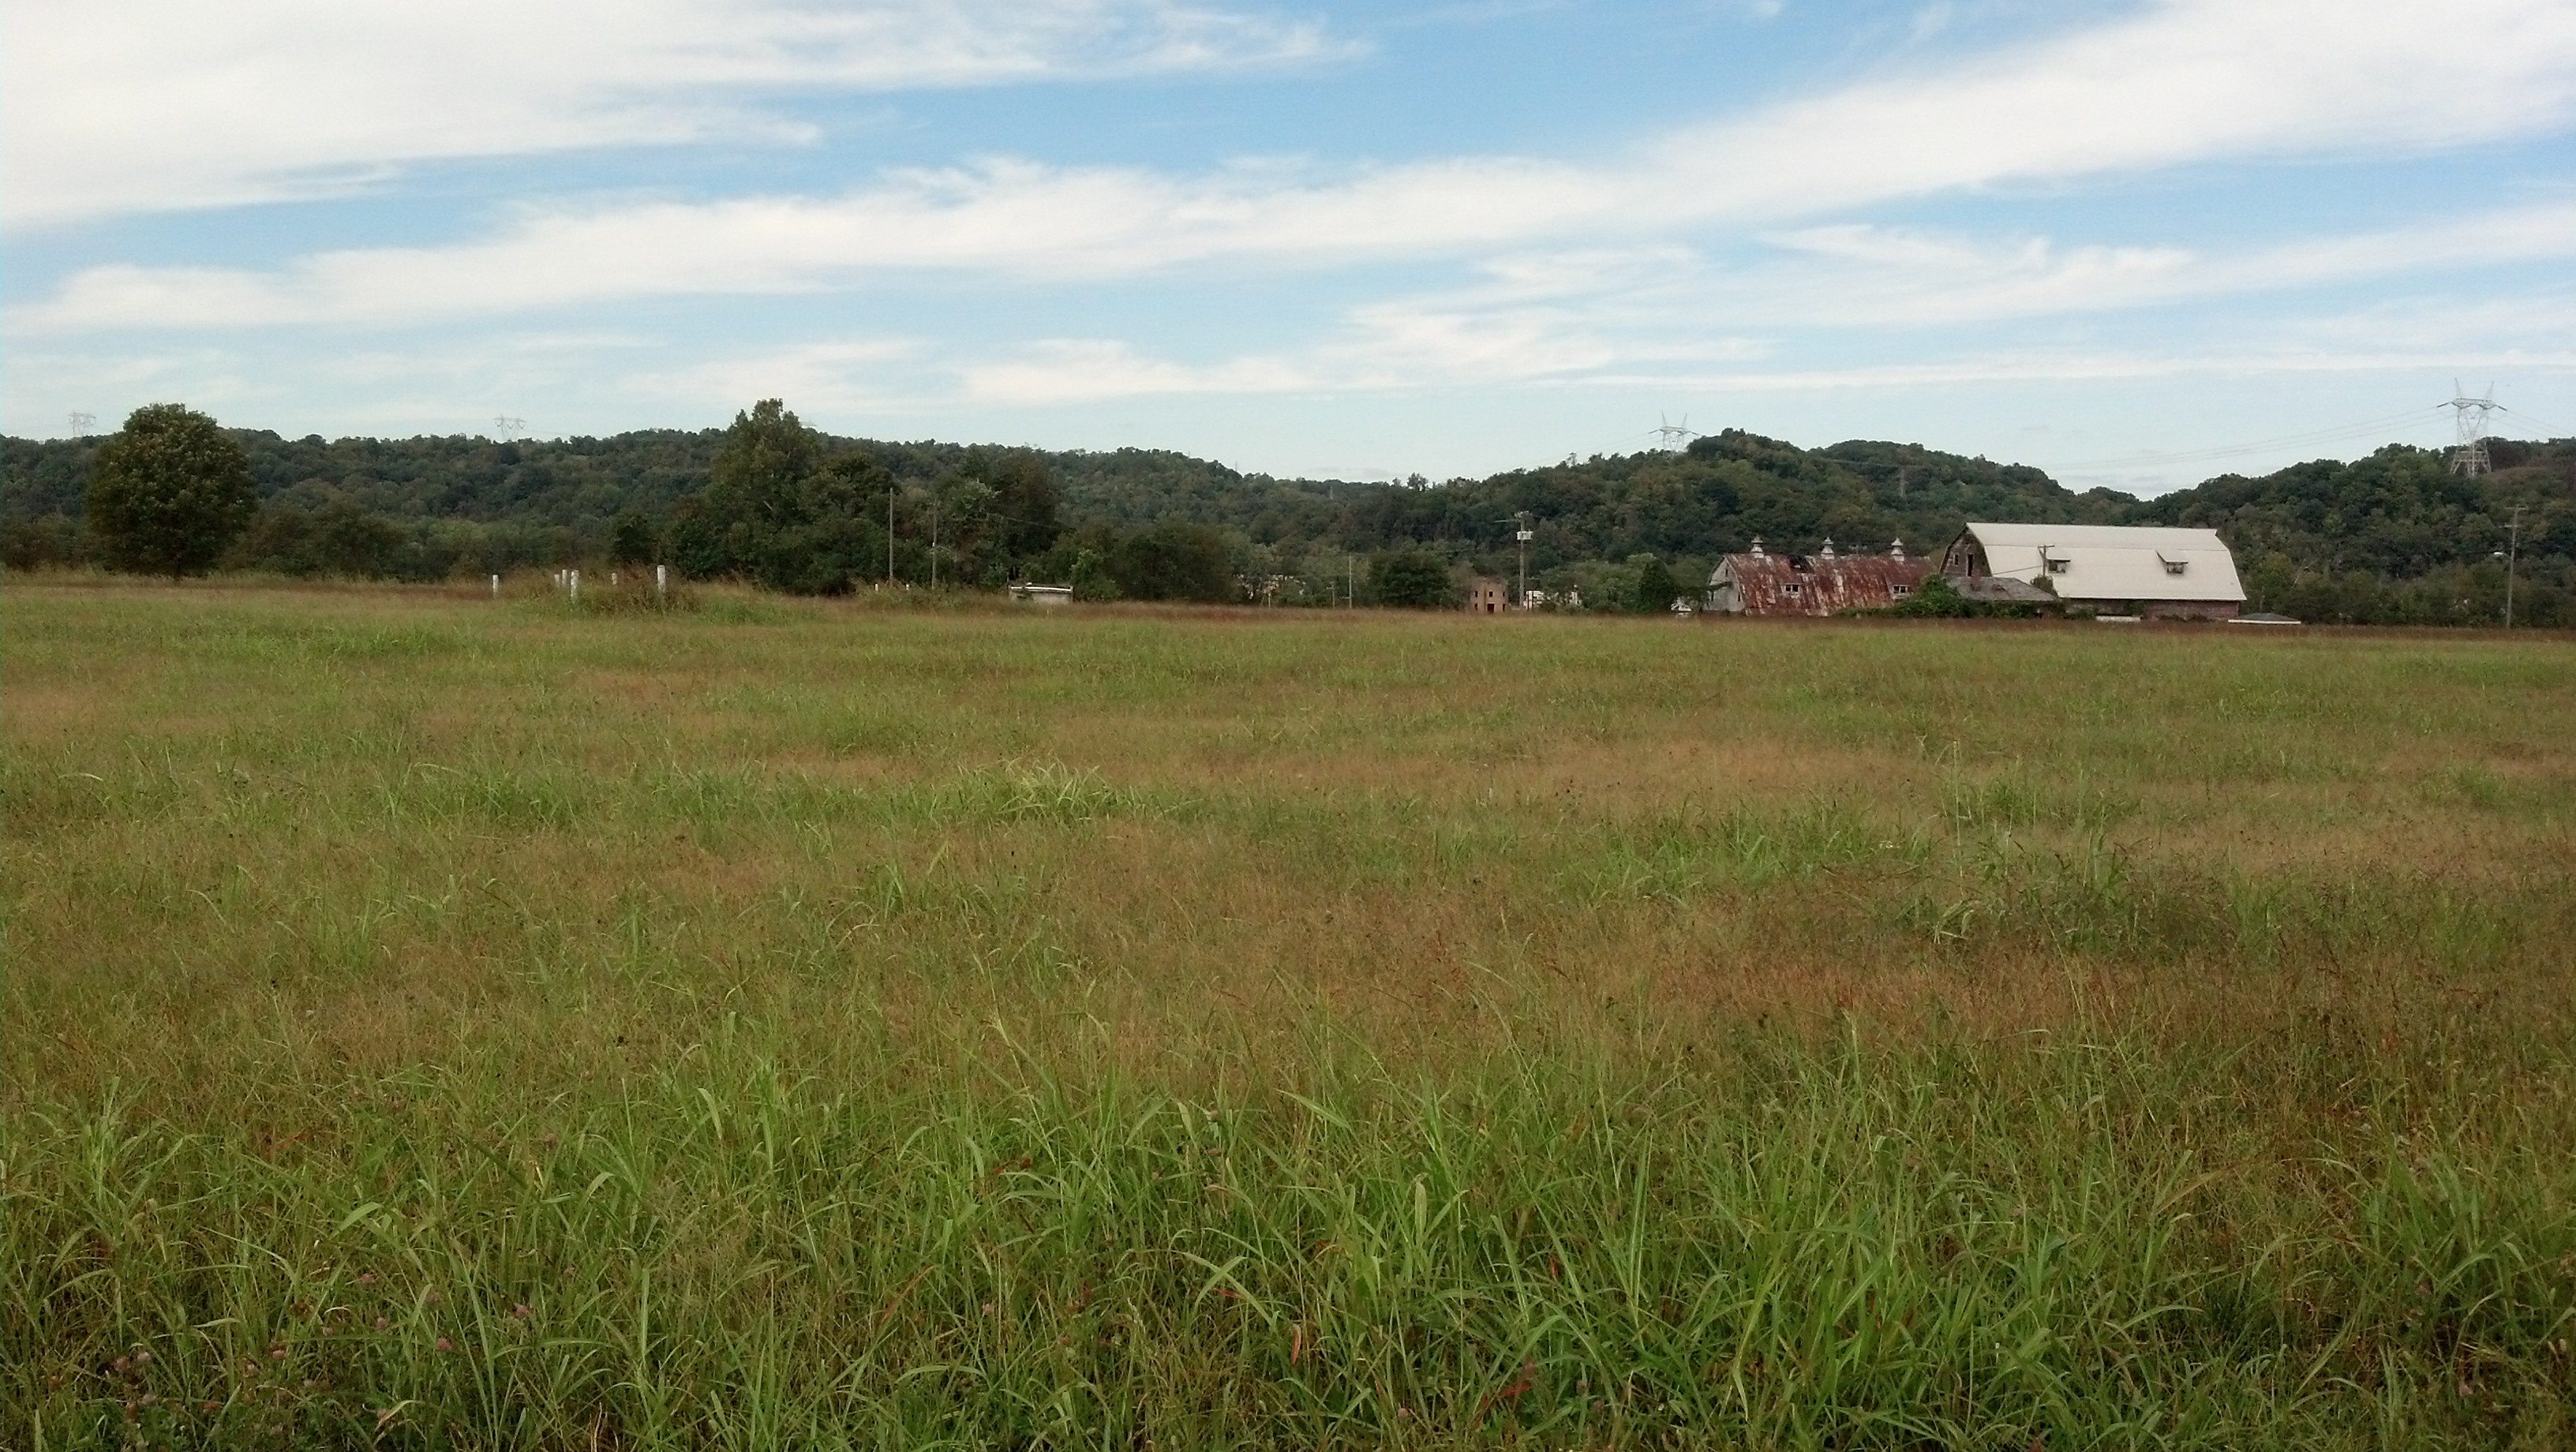 Former site of Lakin Industrial School for Colored Boys